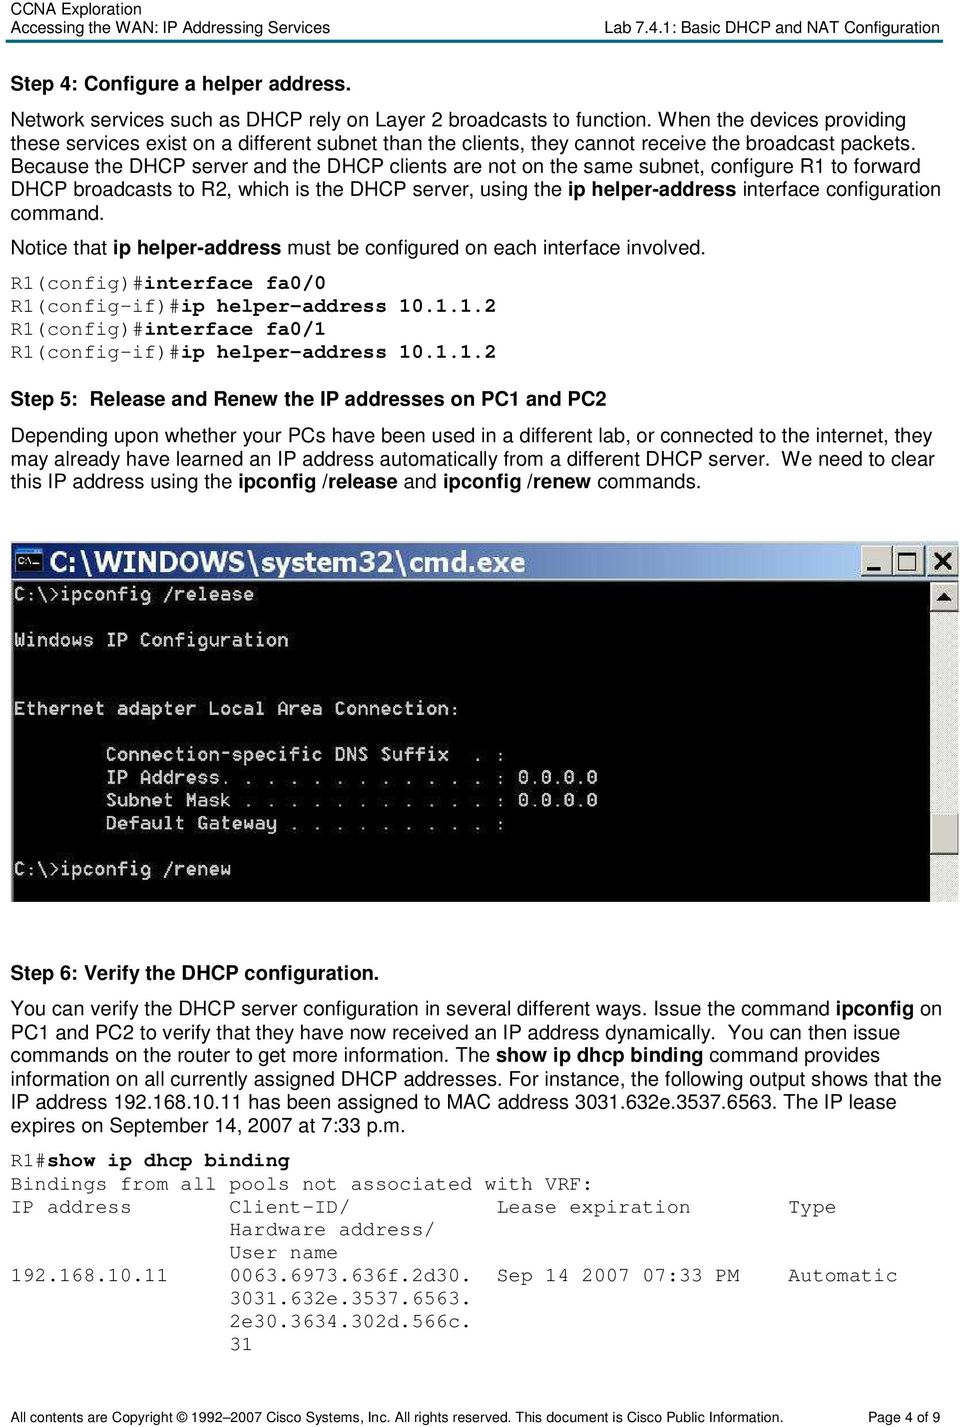 Lab 7 4 1: Basic DHCP and NAT Configuration - PDF